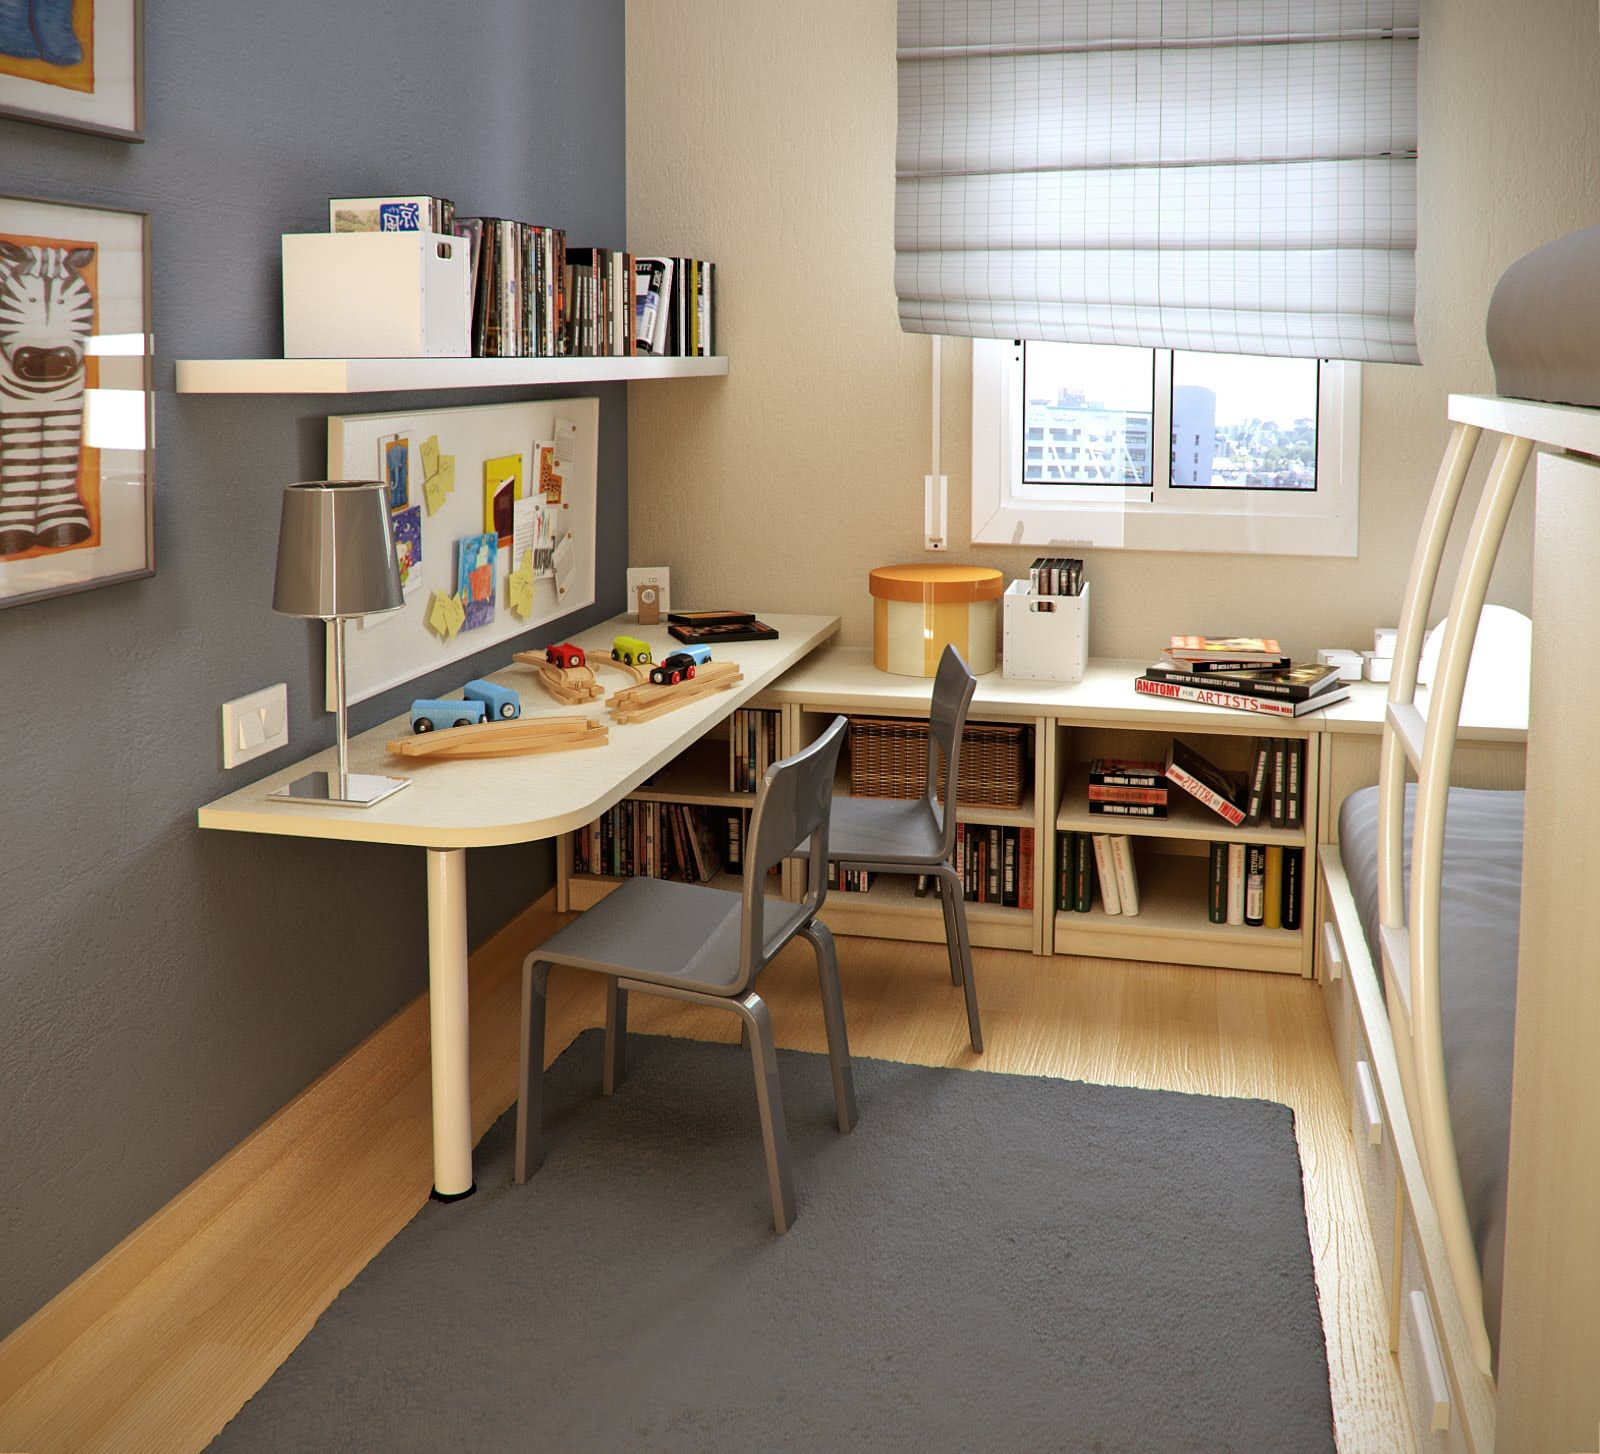 Swell 17 Best Images About Small Study On Pinterest Study Areas Largest Home Design Picture Inspirations Pitcheantrous